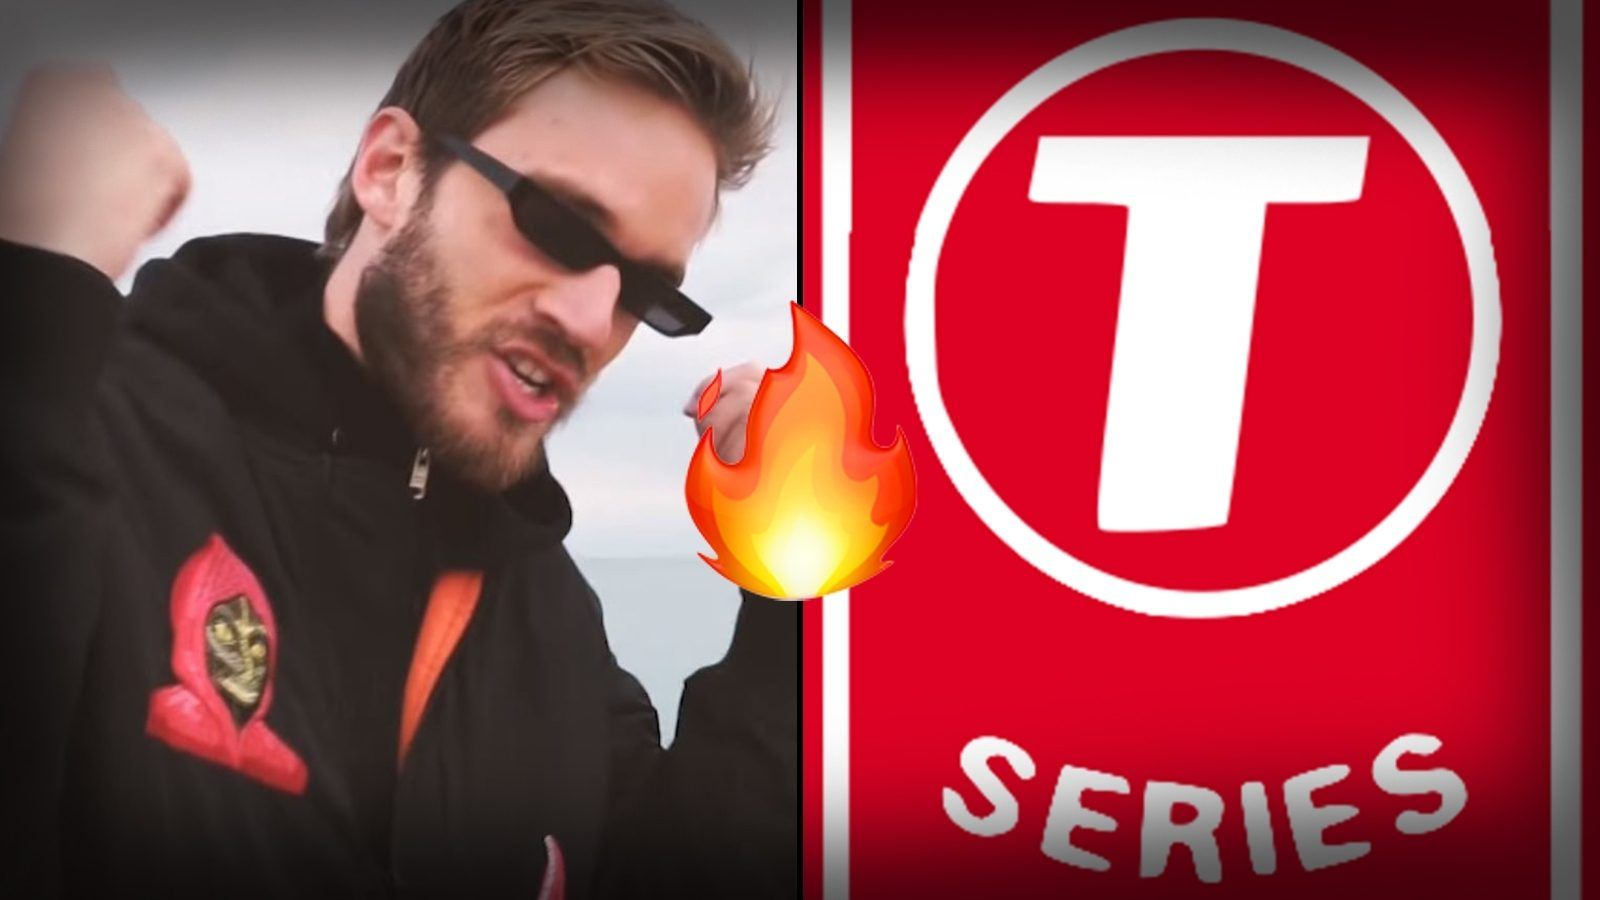 PewDiePie vs. T-Series: Who is the Winner?